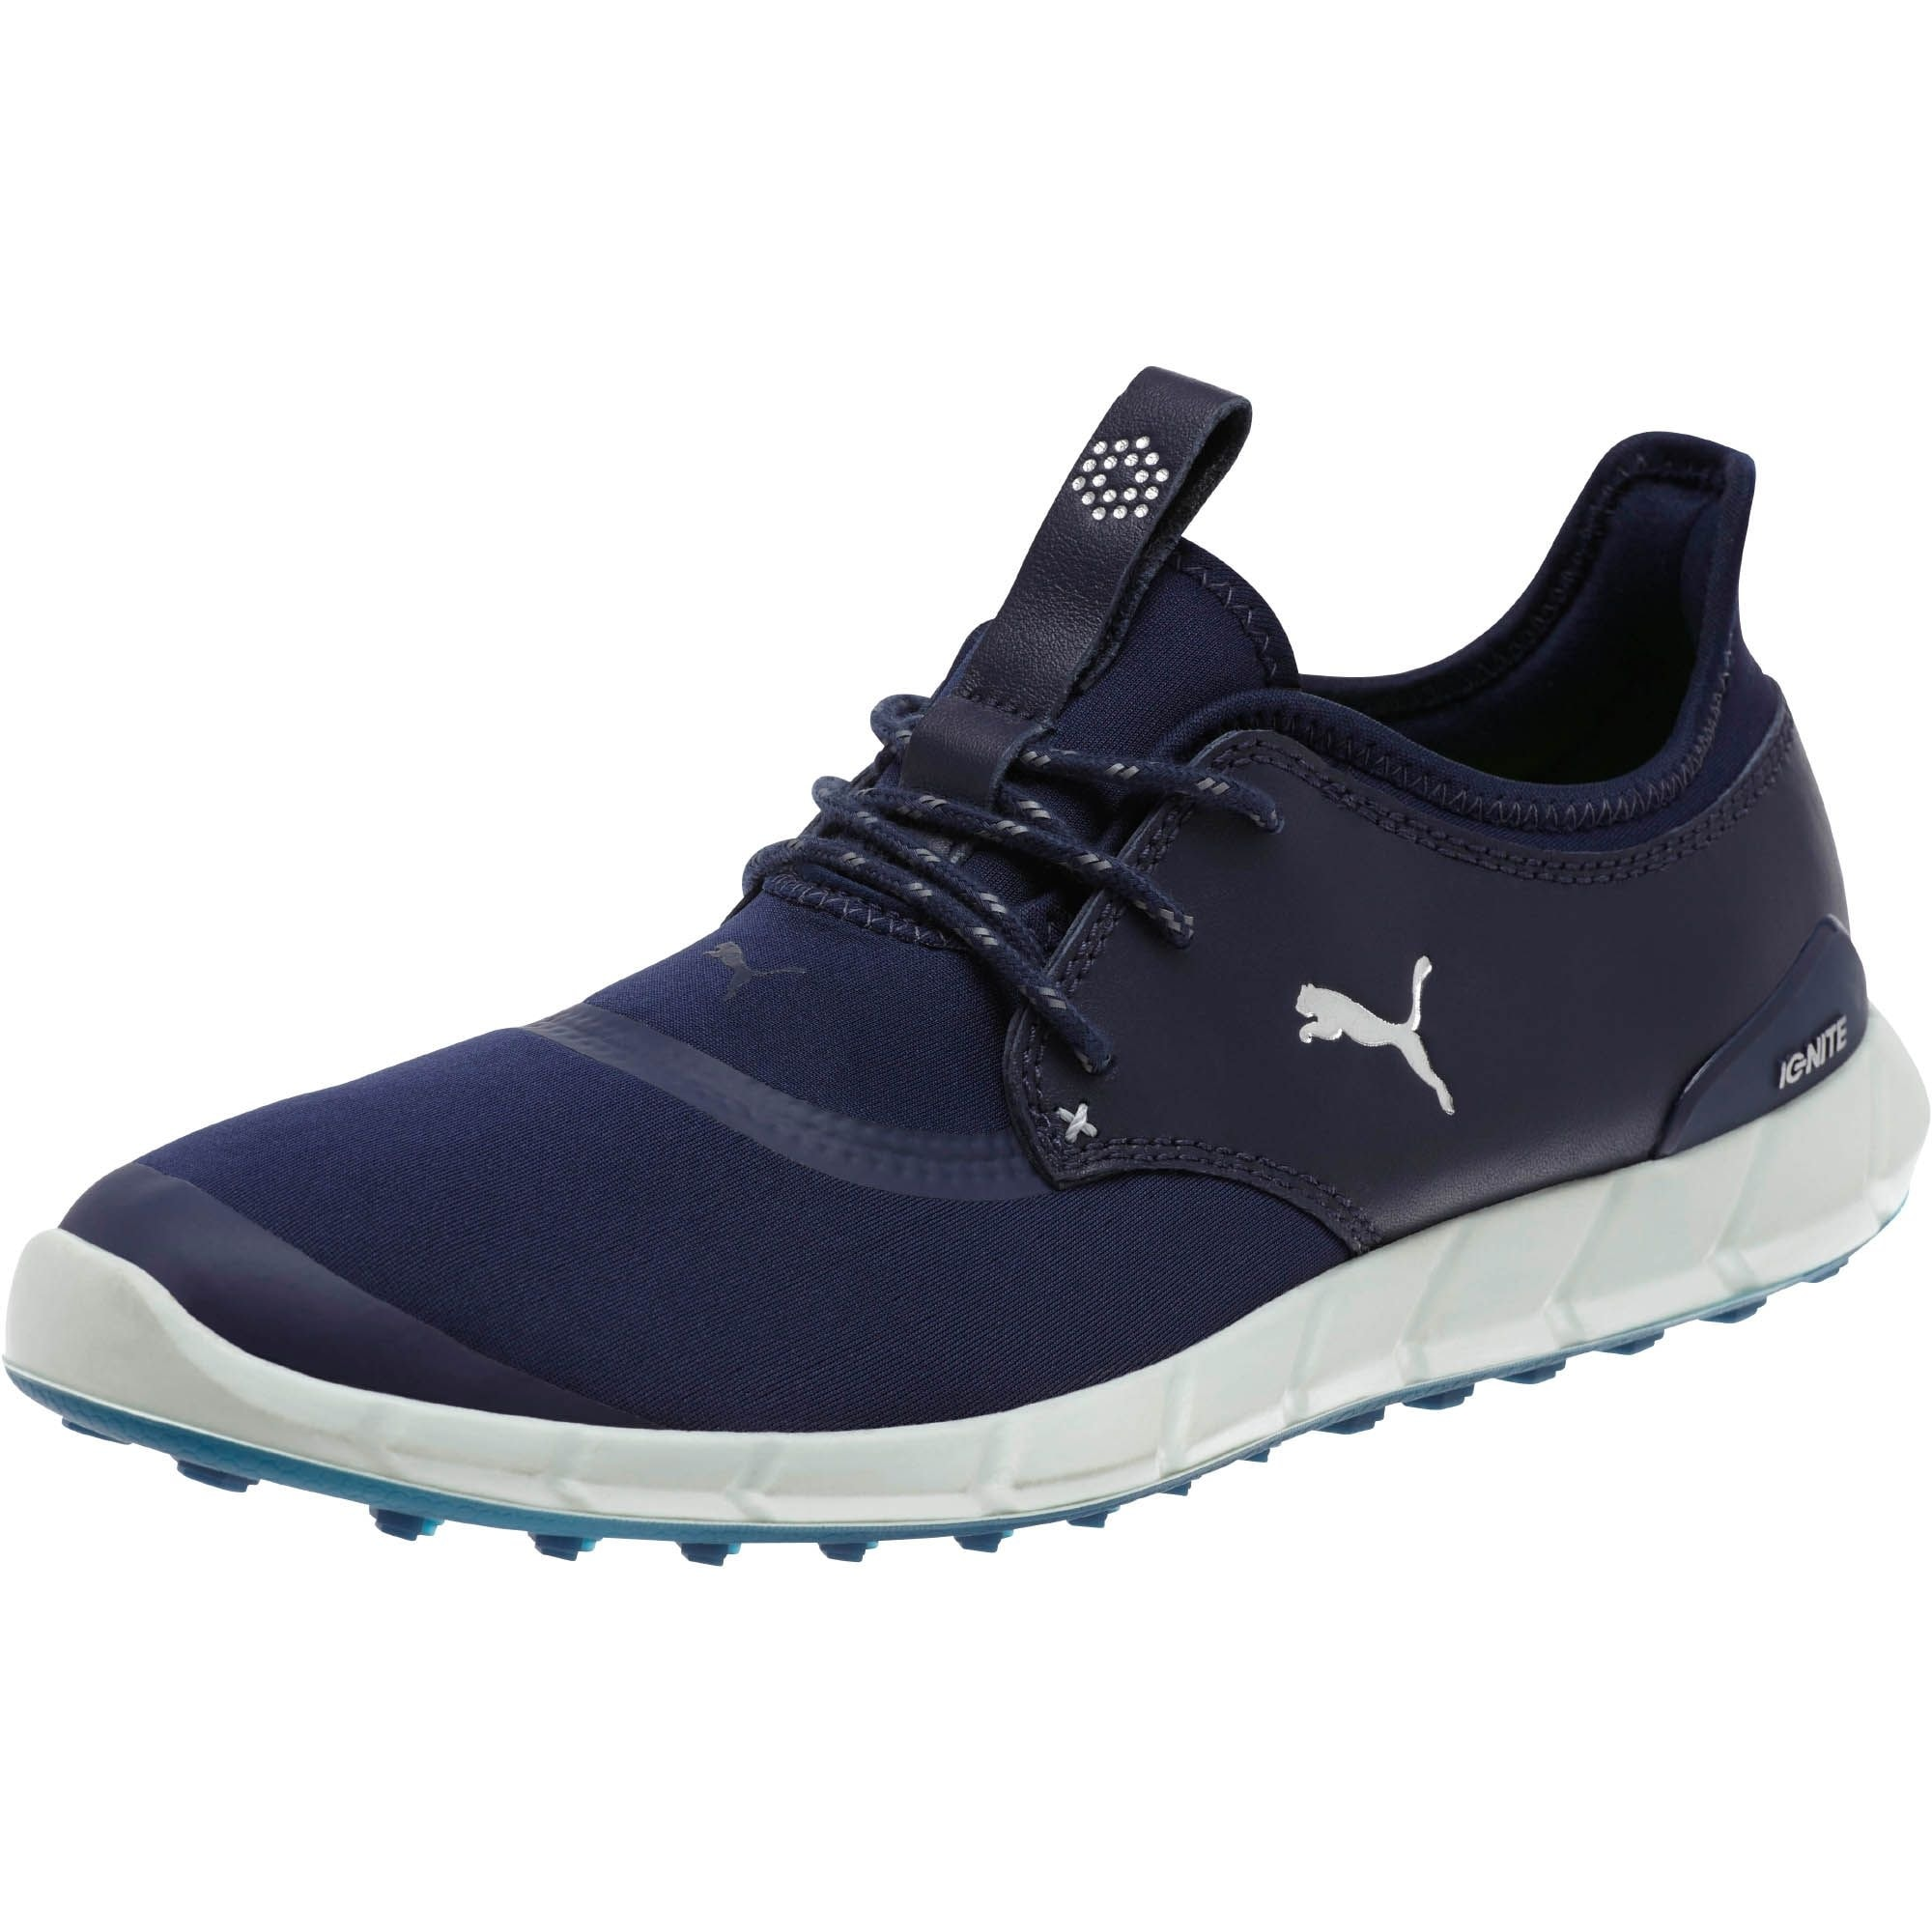 brand quality best quality durable service Puma Men's Ignite Spikeless Sport Peacoat Navy/Silver /White Golf Shoes  189416-03